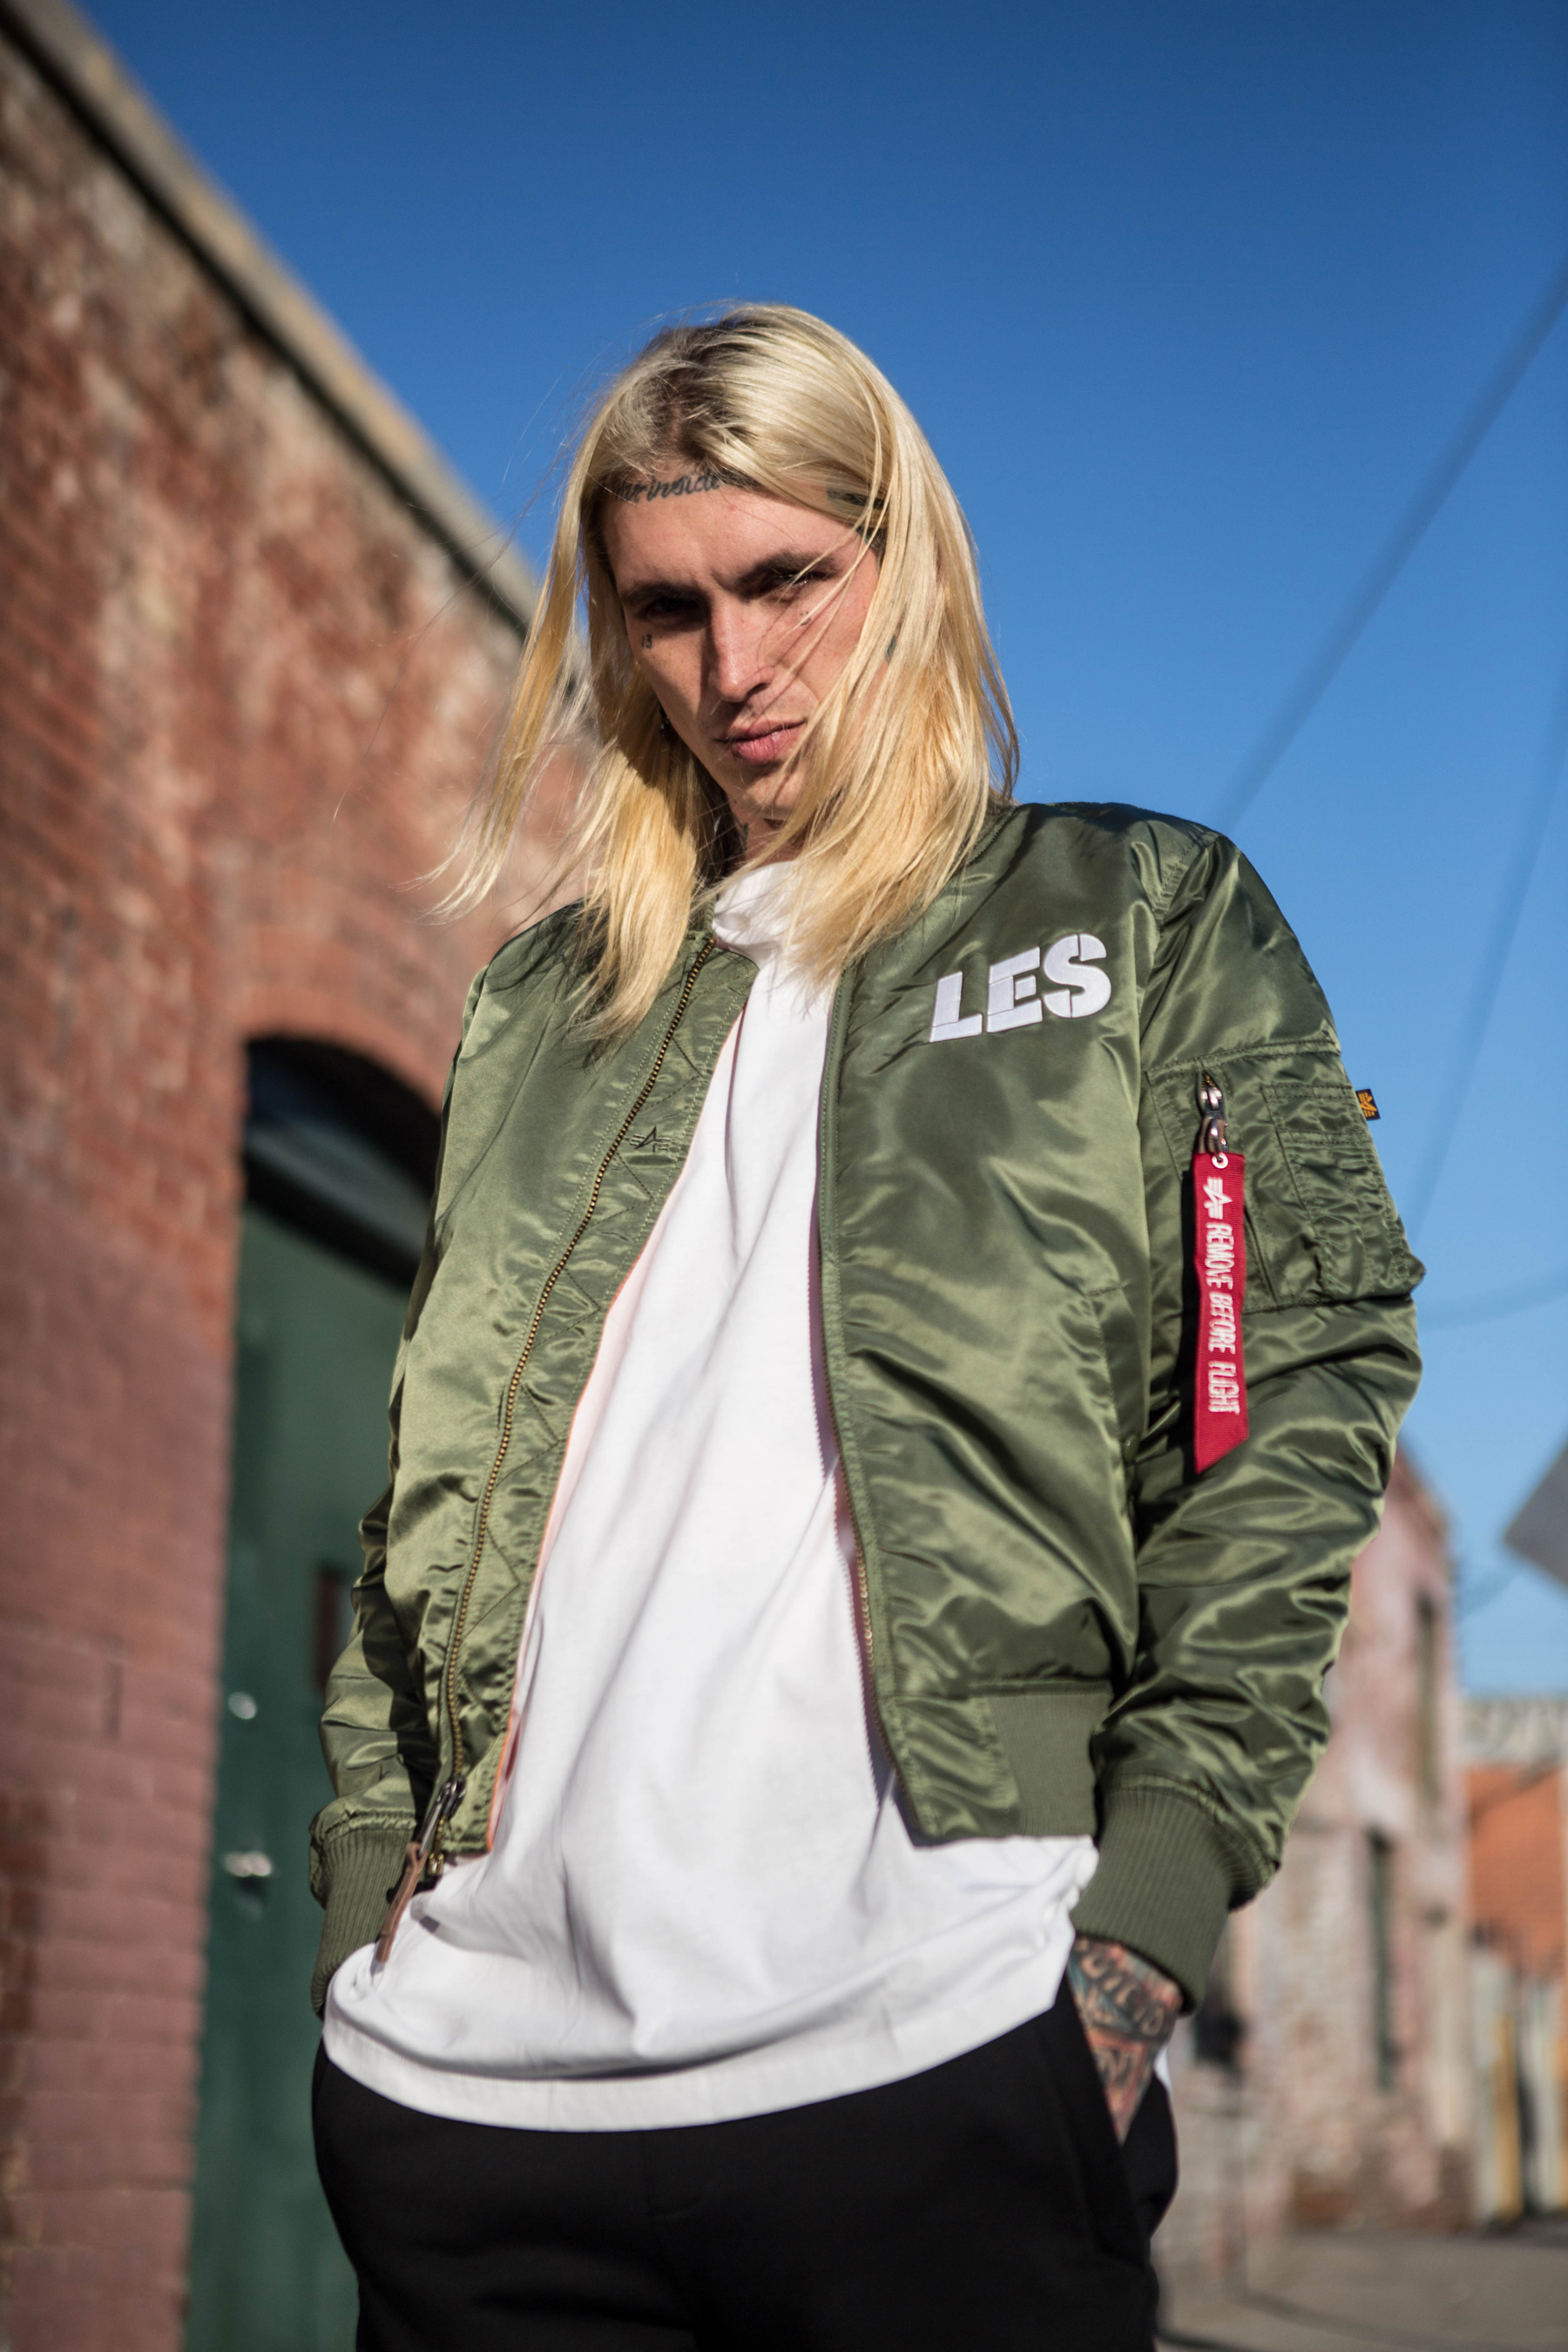 best website 3cf20 2aa6f ALPHA INDUSTRIES x LES BENJAMINS | Blog | Discover | Alpha ...